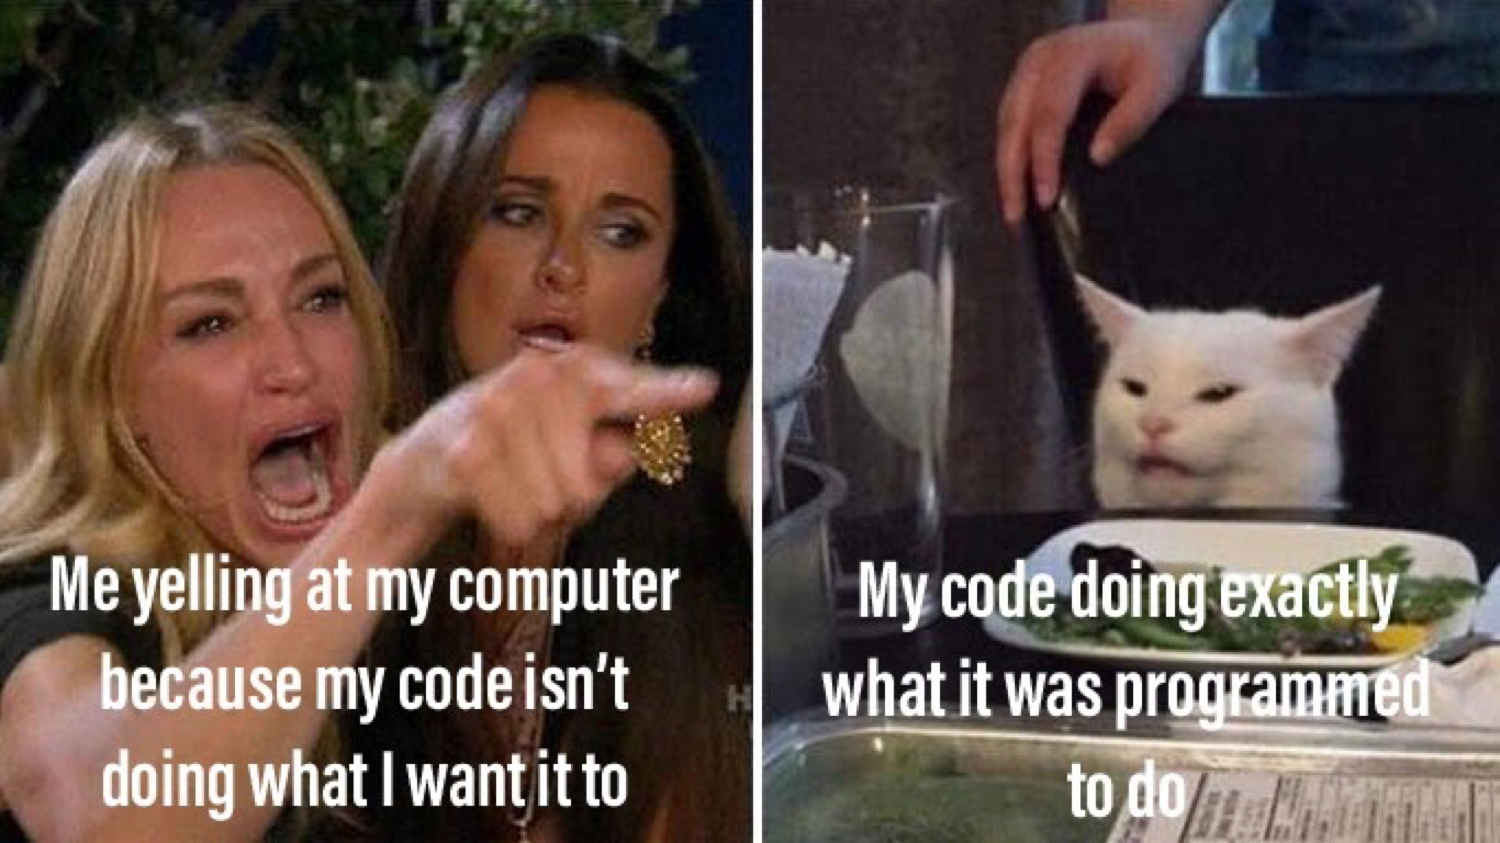 Don't blame the code